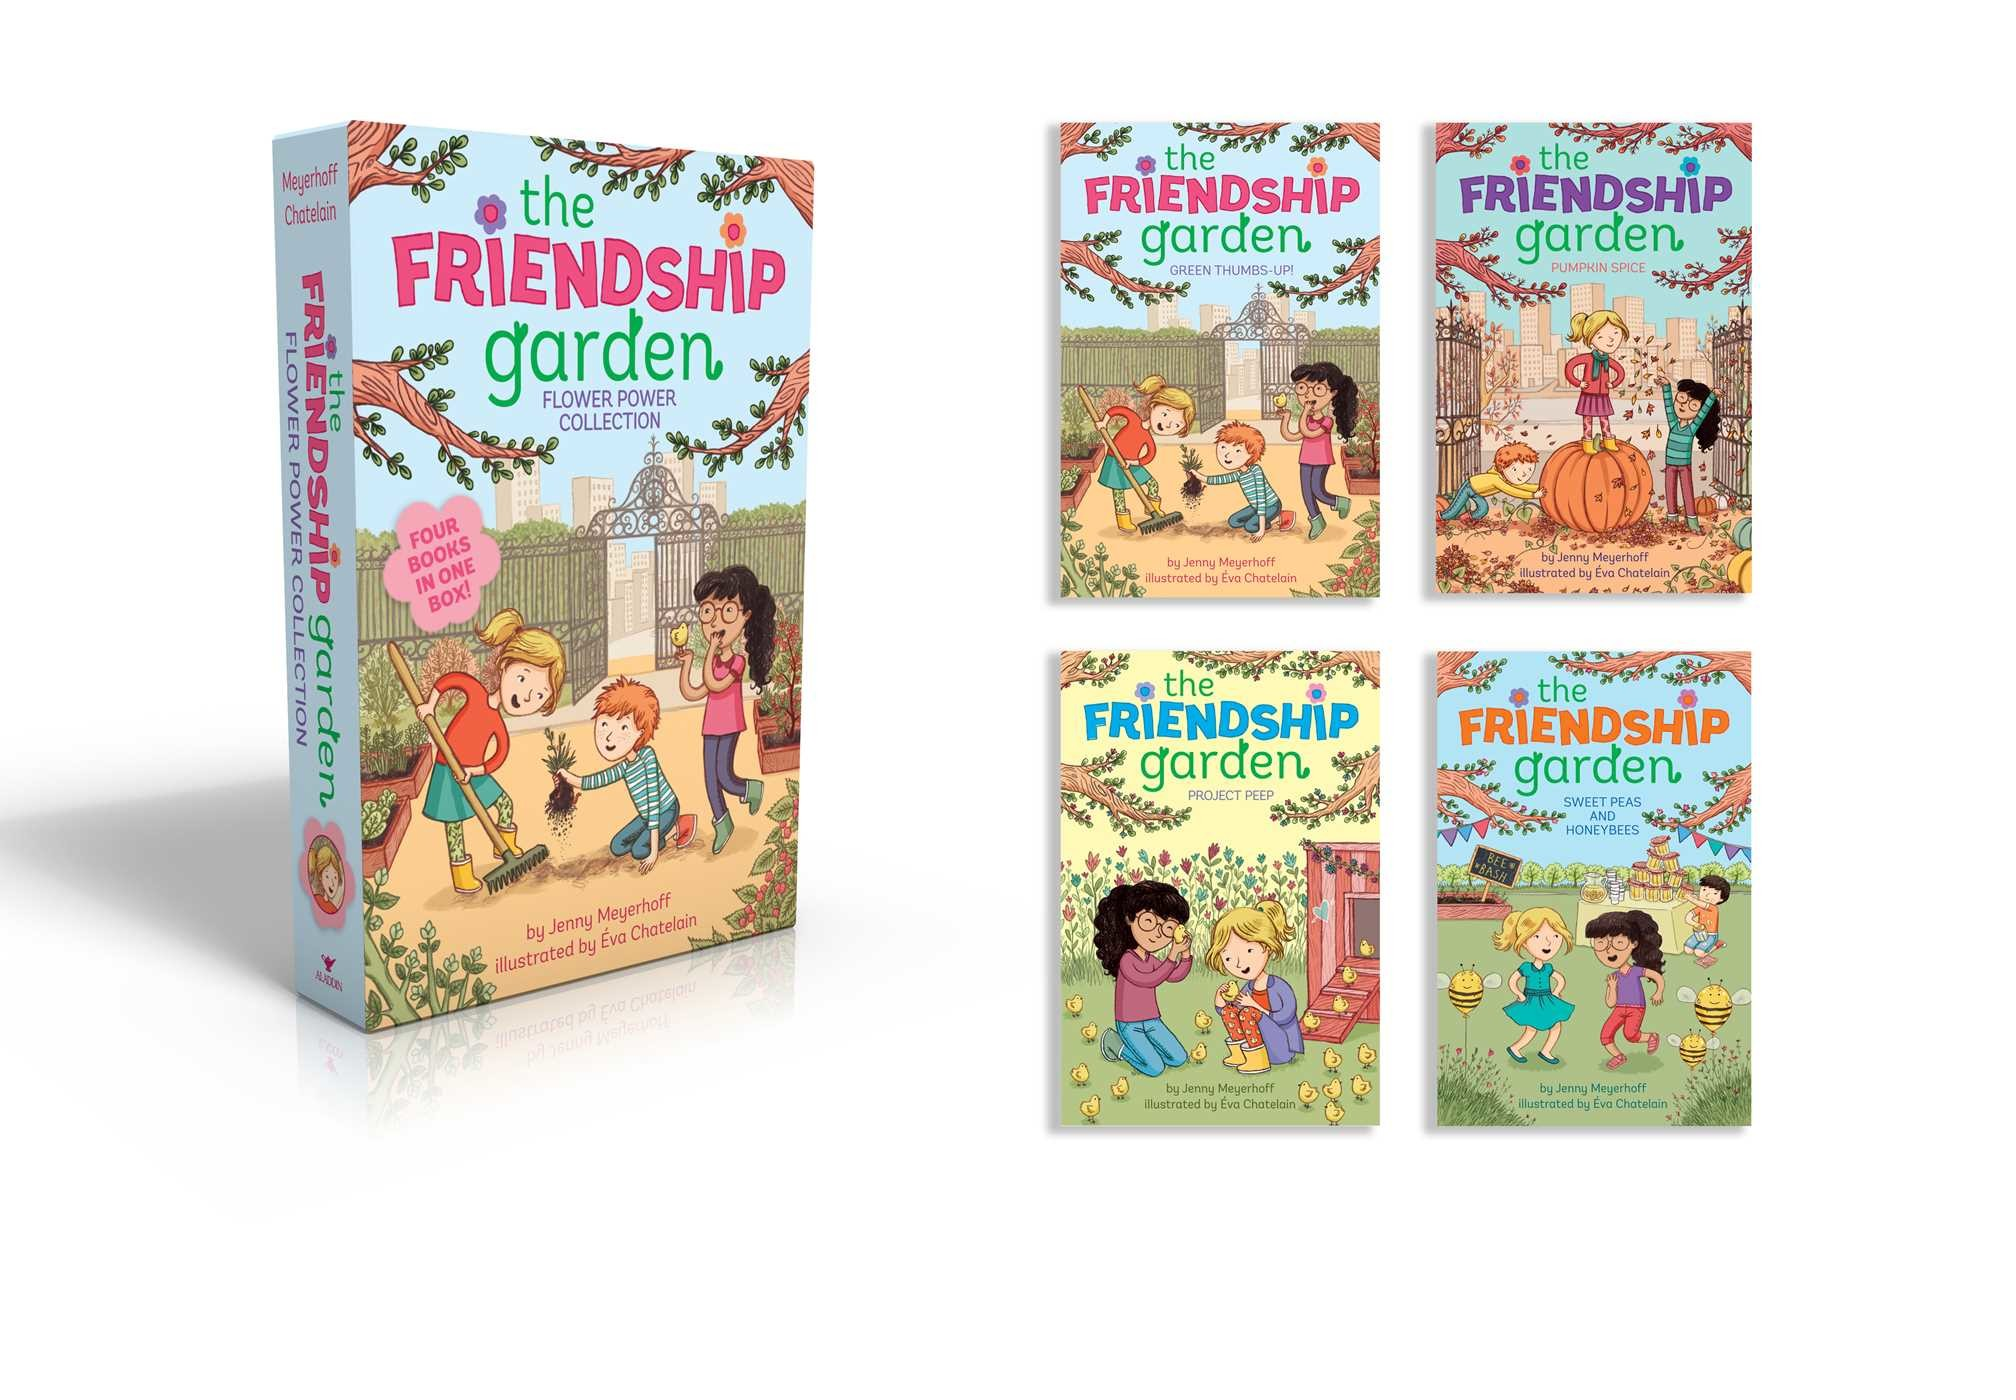 The friendship garden flower power collection books 1 4 9781481469258.in01